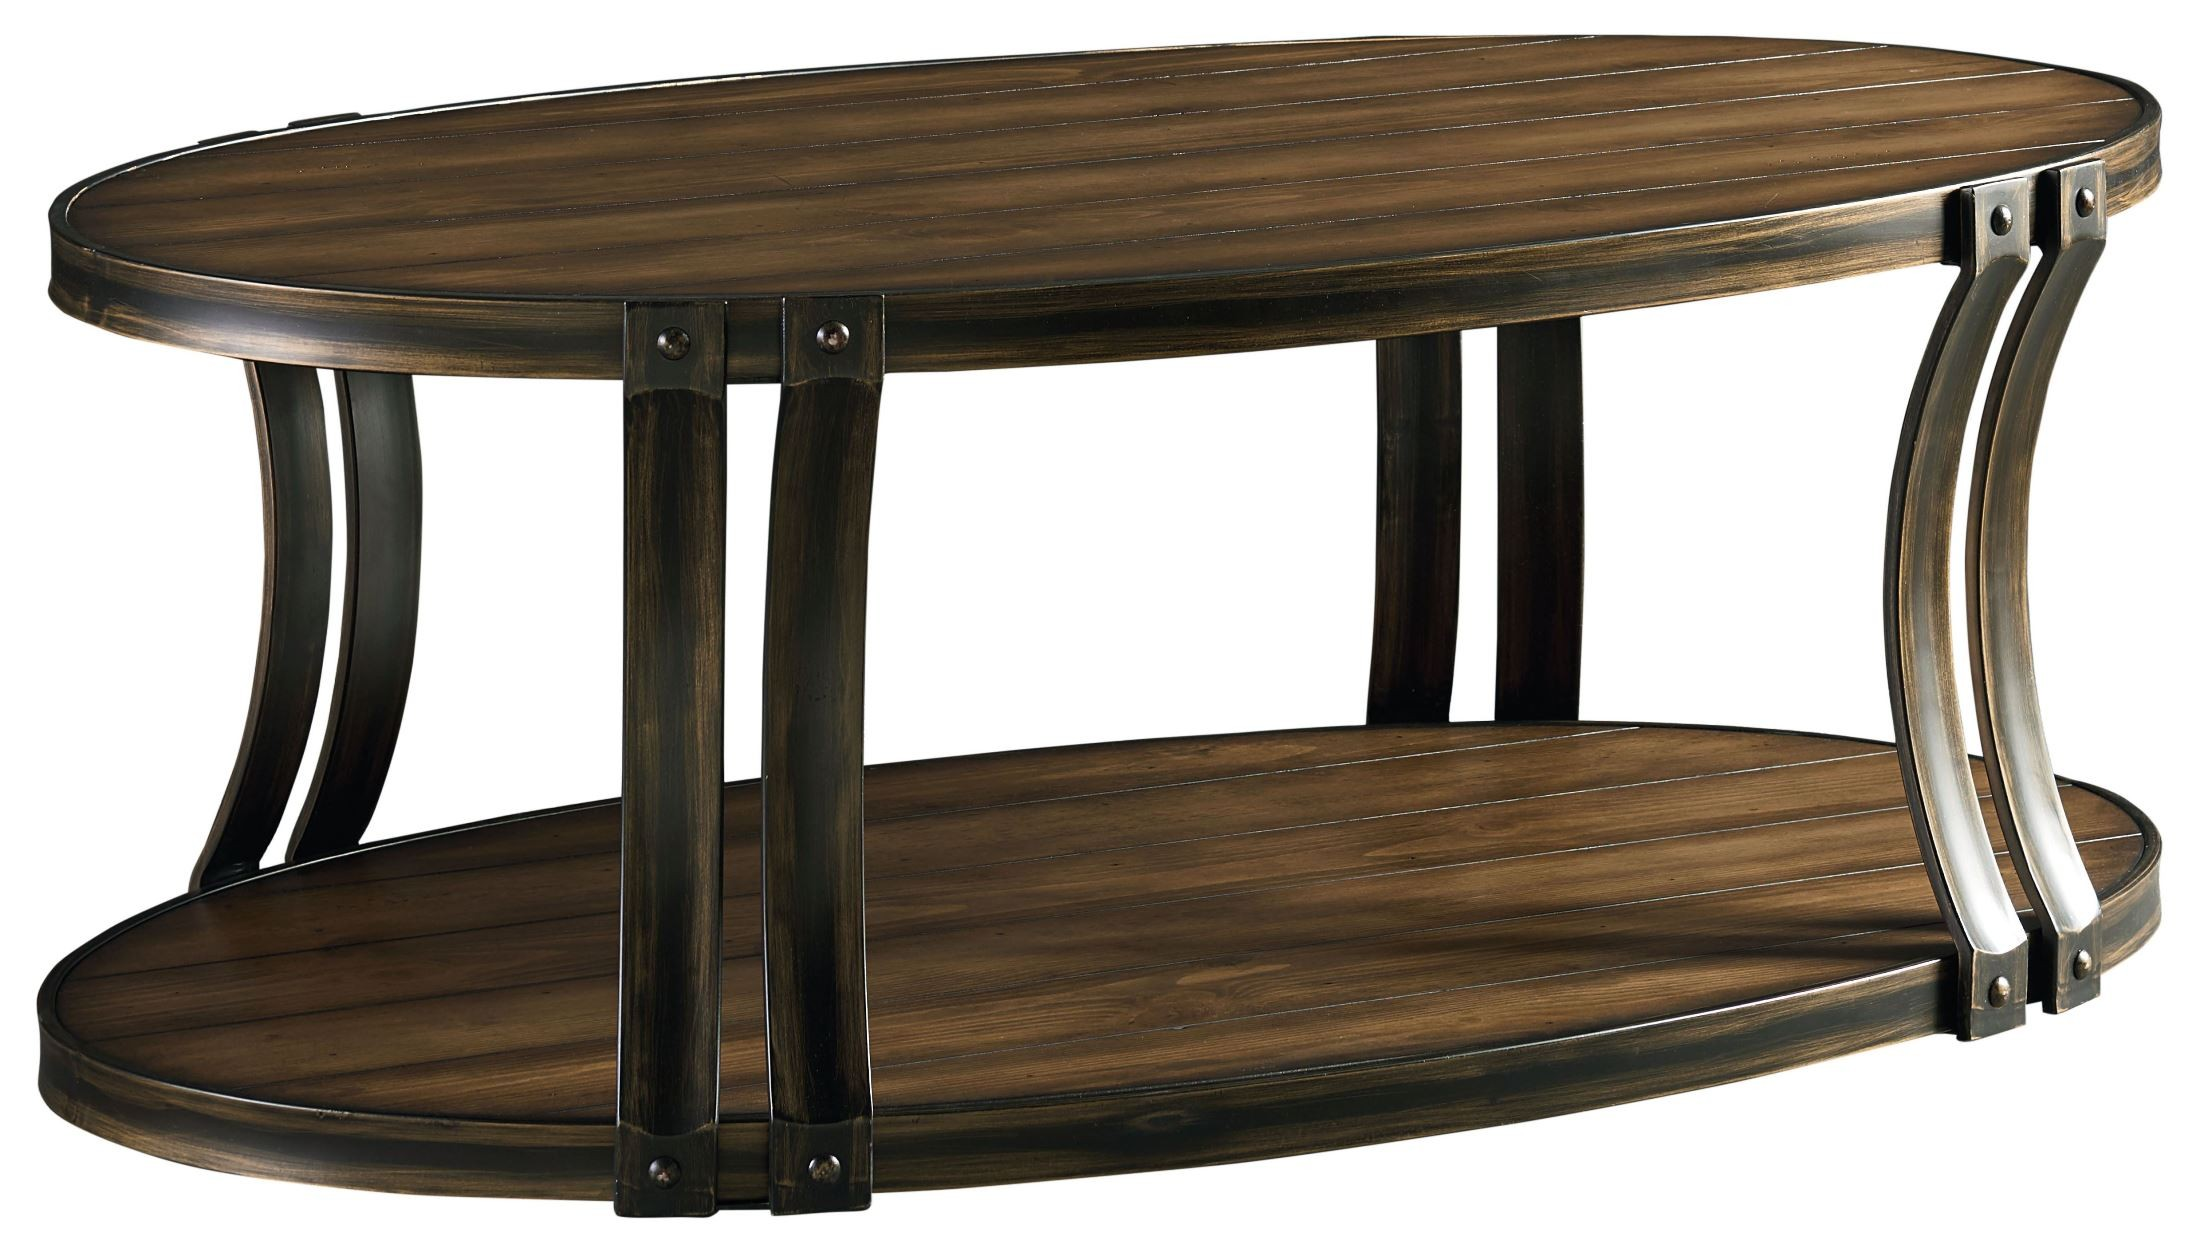 Huntington Smoky Caramel Pine Oval Cocktail Table From Standard Furniture Coleman Furniture